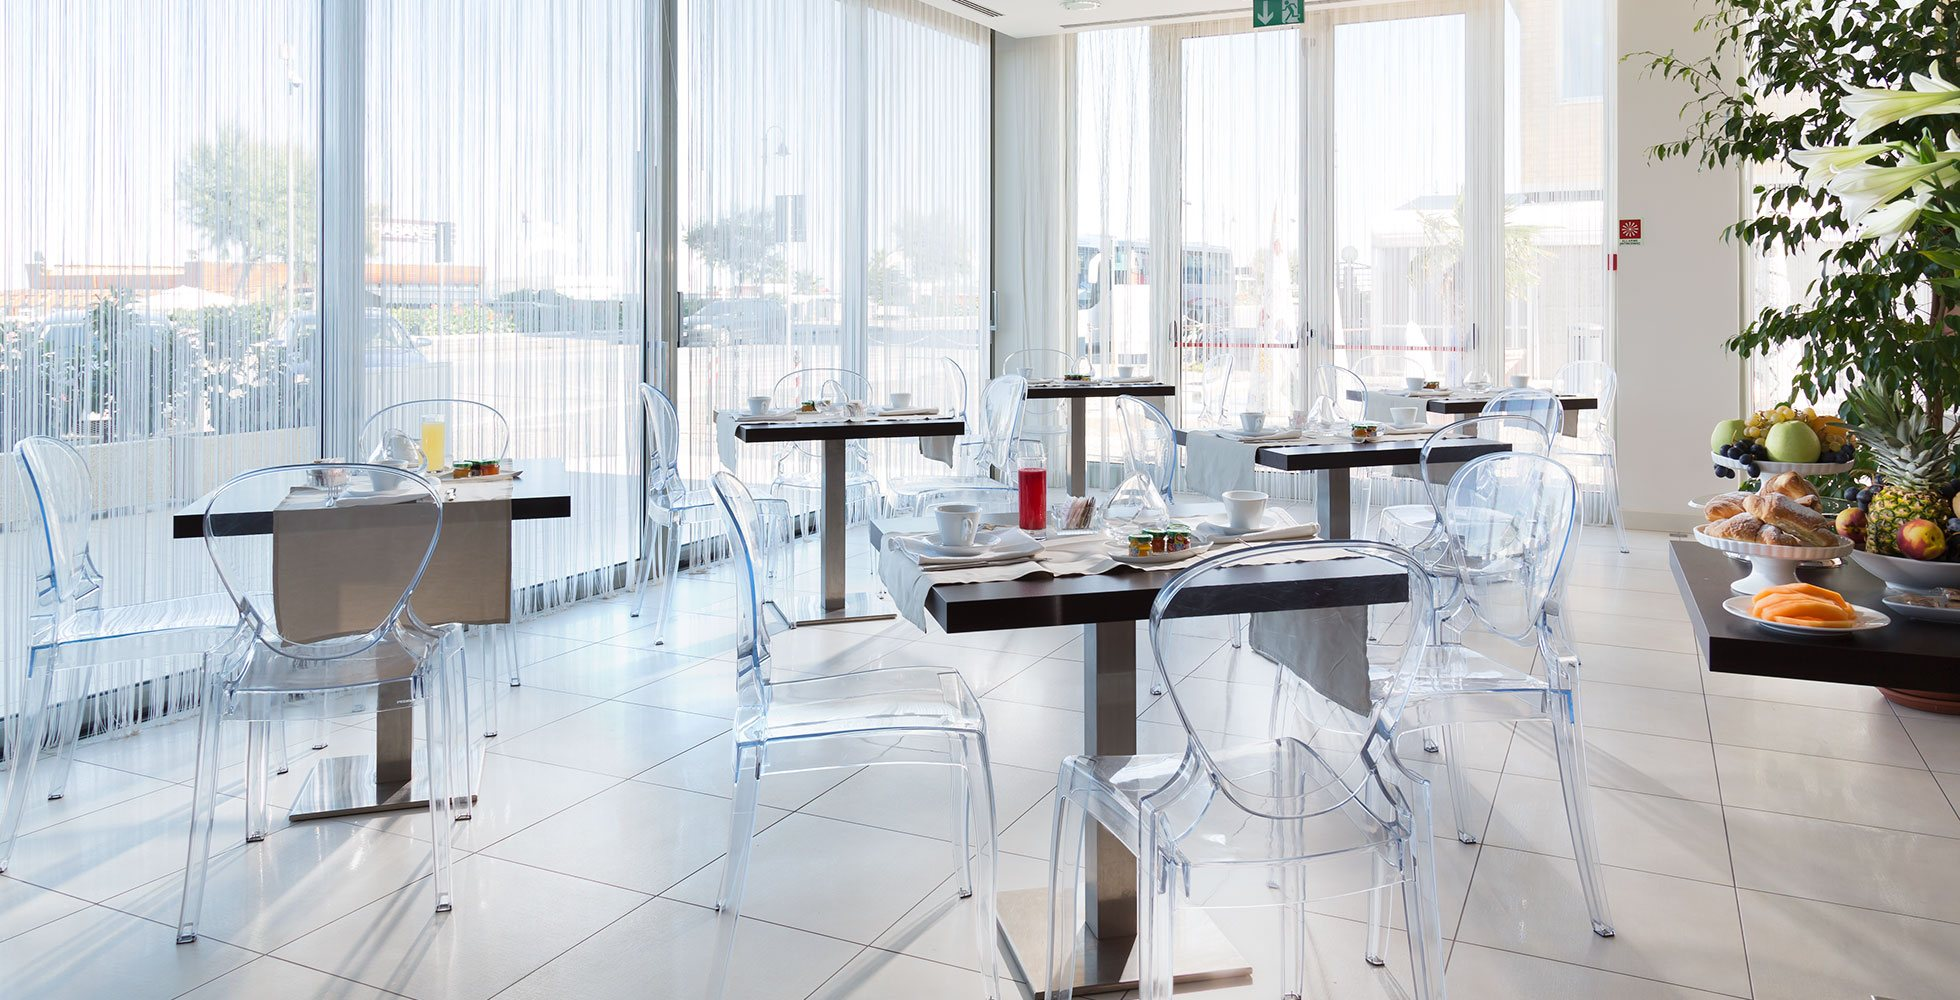 4-Star Hotel in Rimini with Pool Heated | Terminal Palace & Spa